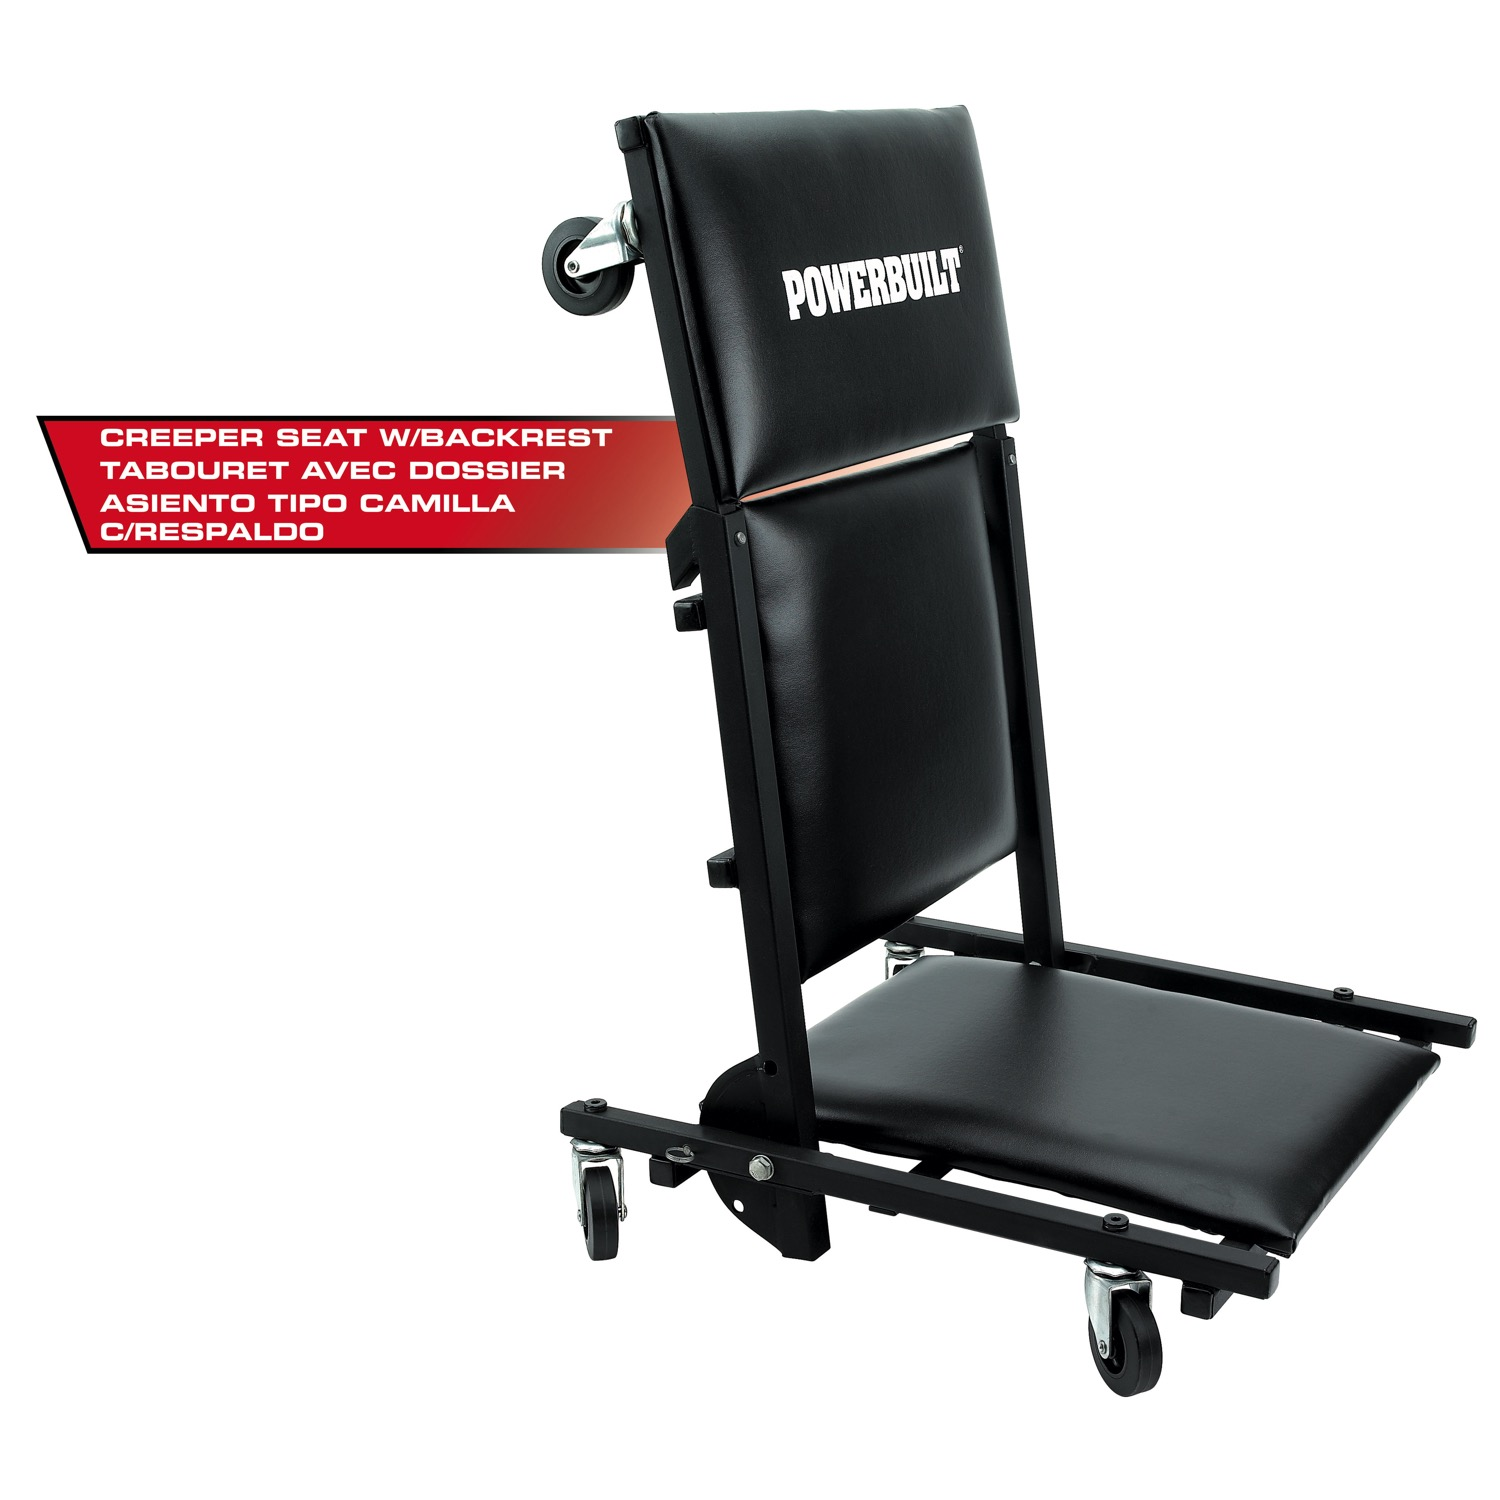 Tabourets Walmart Powerbuilt 3 In 1 40 Inch Floor Creeper Garage Creeper And Rolling Seat 640981